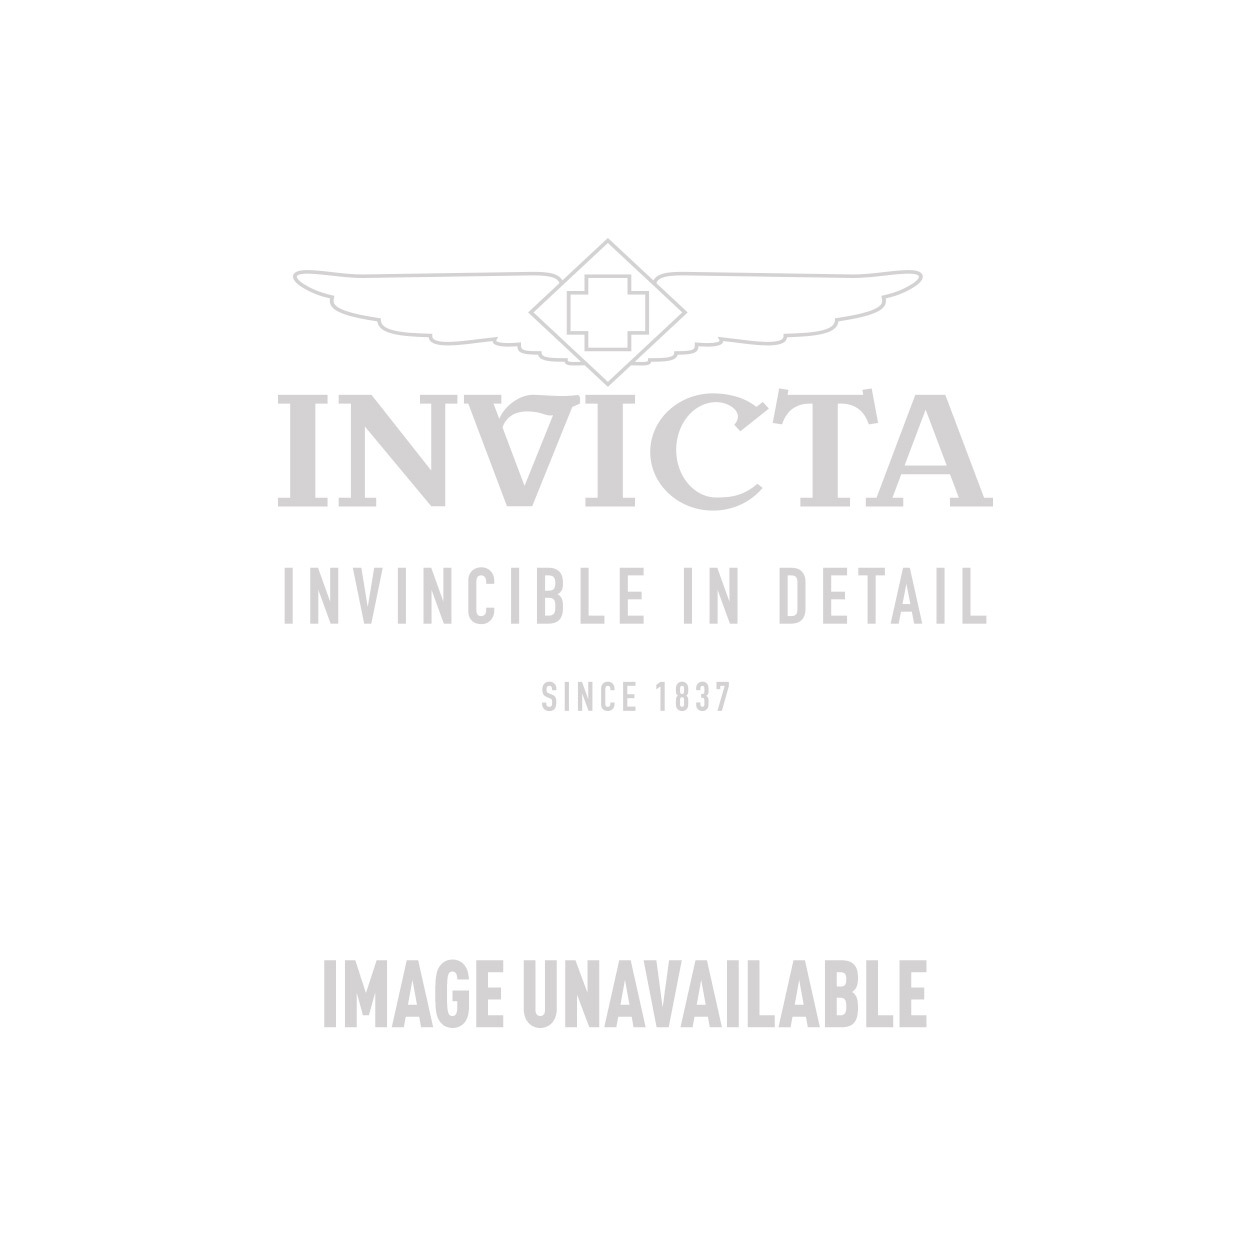 Invicta 21cm Men's Bracelets in Black, Pink - Model J0280